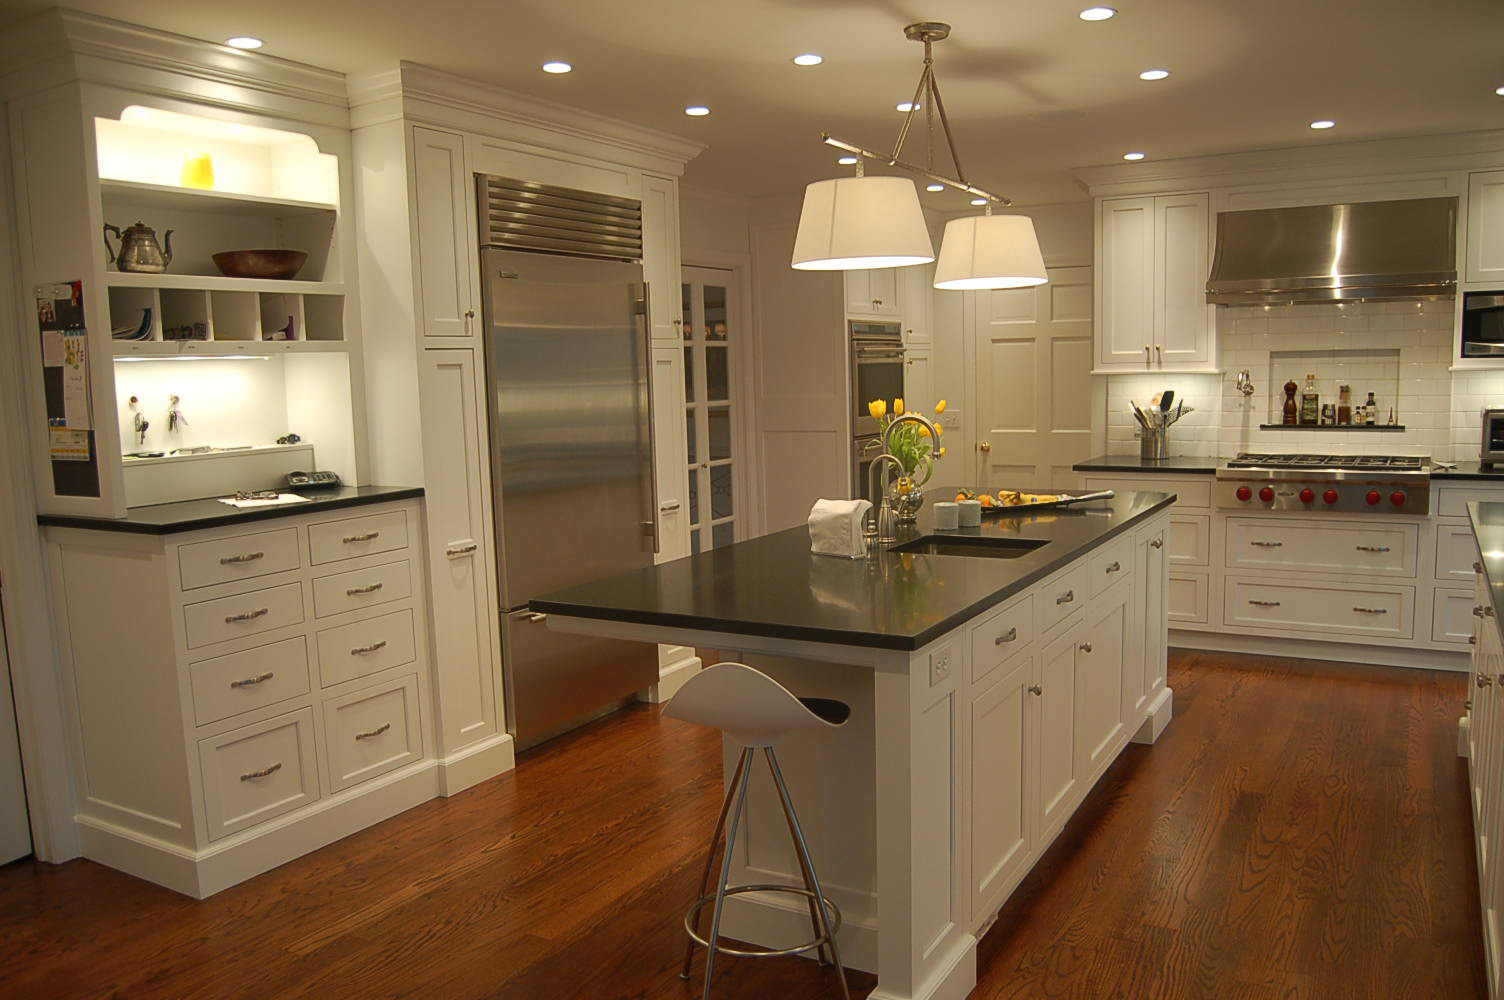 Classic Style Kitchen Island in Narrow Design with Single Seating Unit and Some Storages